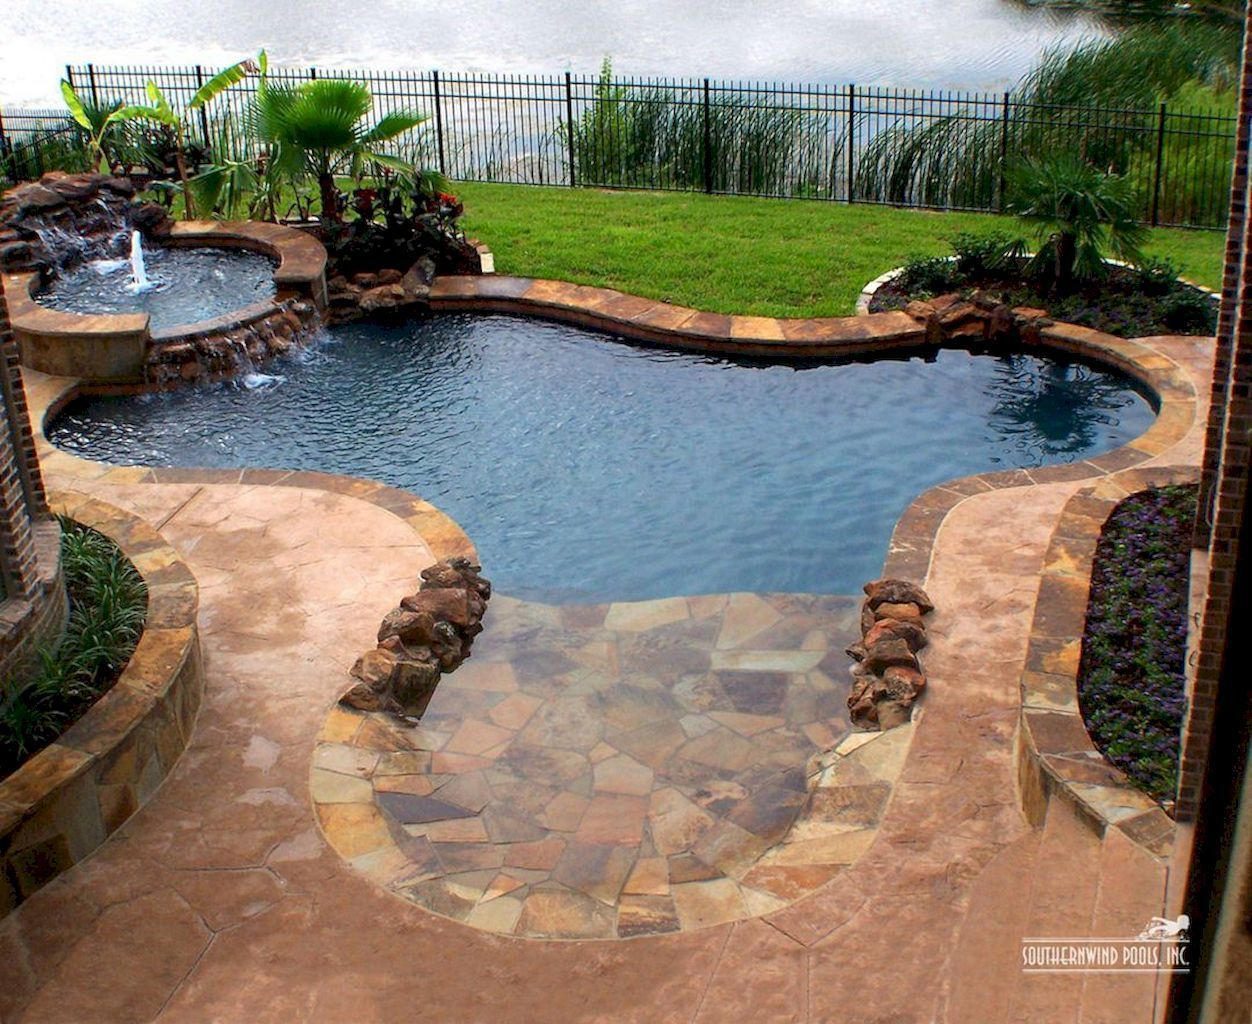 Small Backyard Pool Ideas With S on small outdoor kitchen with pool, small backyard garden with pool, small backyard ideas play area, small backyard ideas luxury, backyard designs with pool, deck ideas with pool, small backyard ideas garden, small home with pool, small patios with pool,